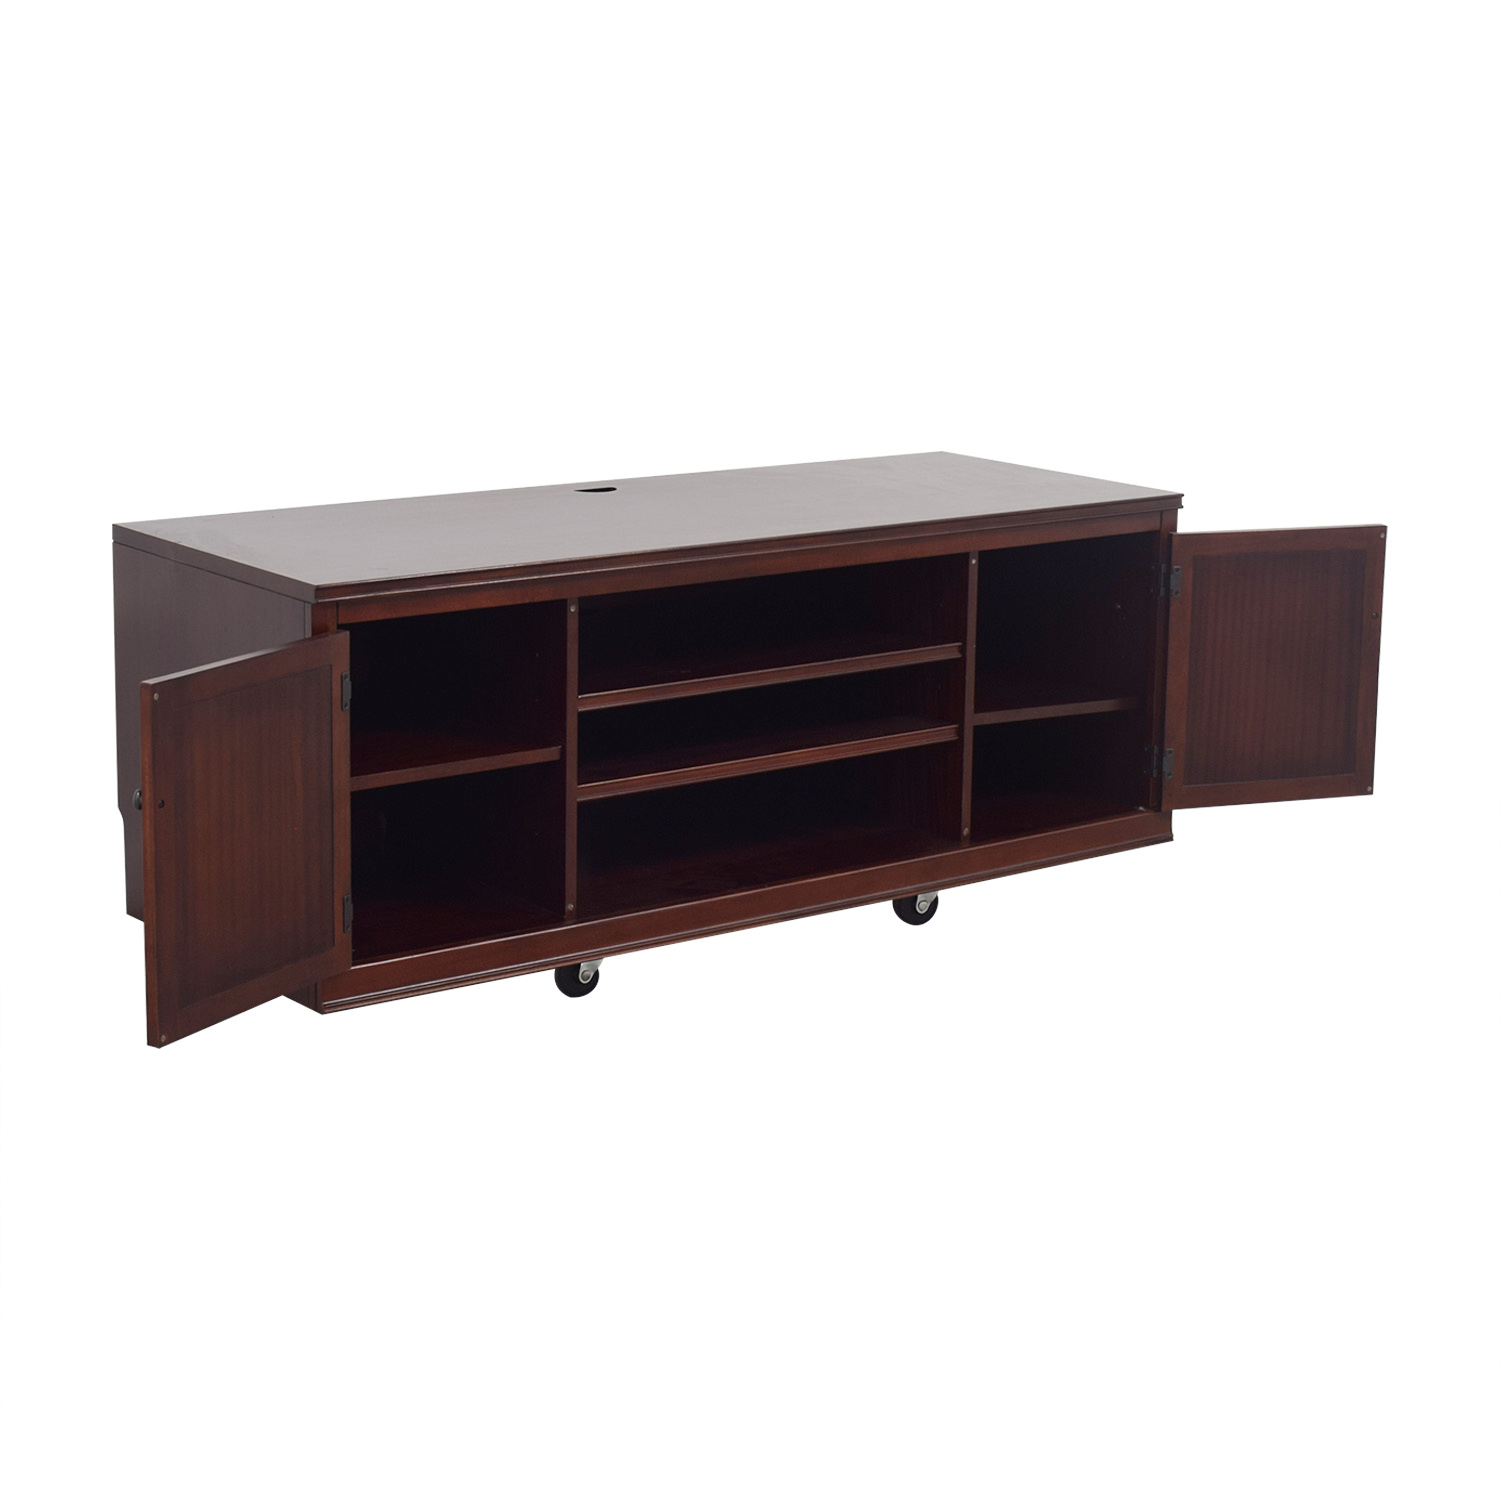 Pottery Barn Pottery Barn Logan Wood TV Stand